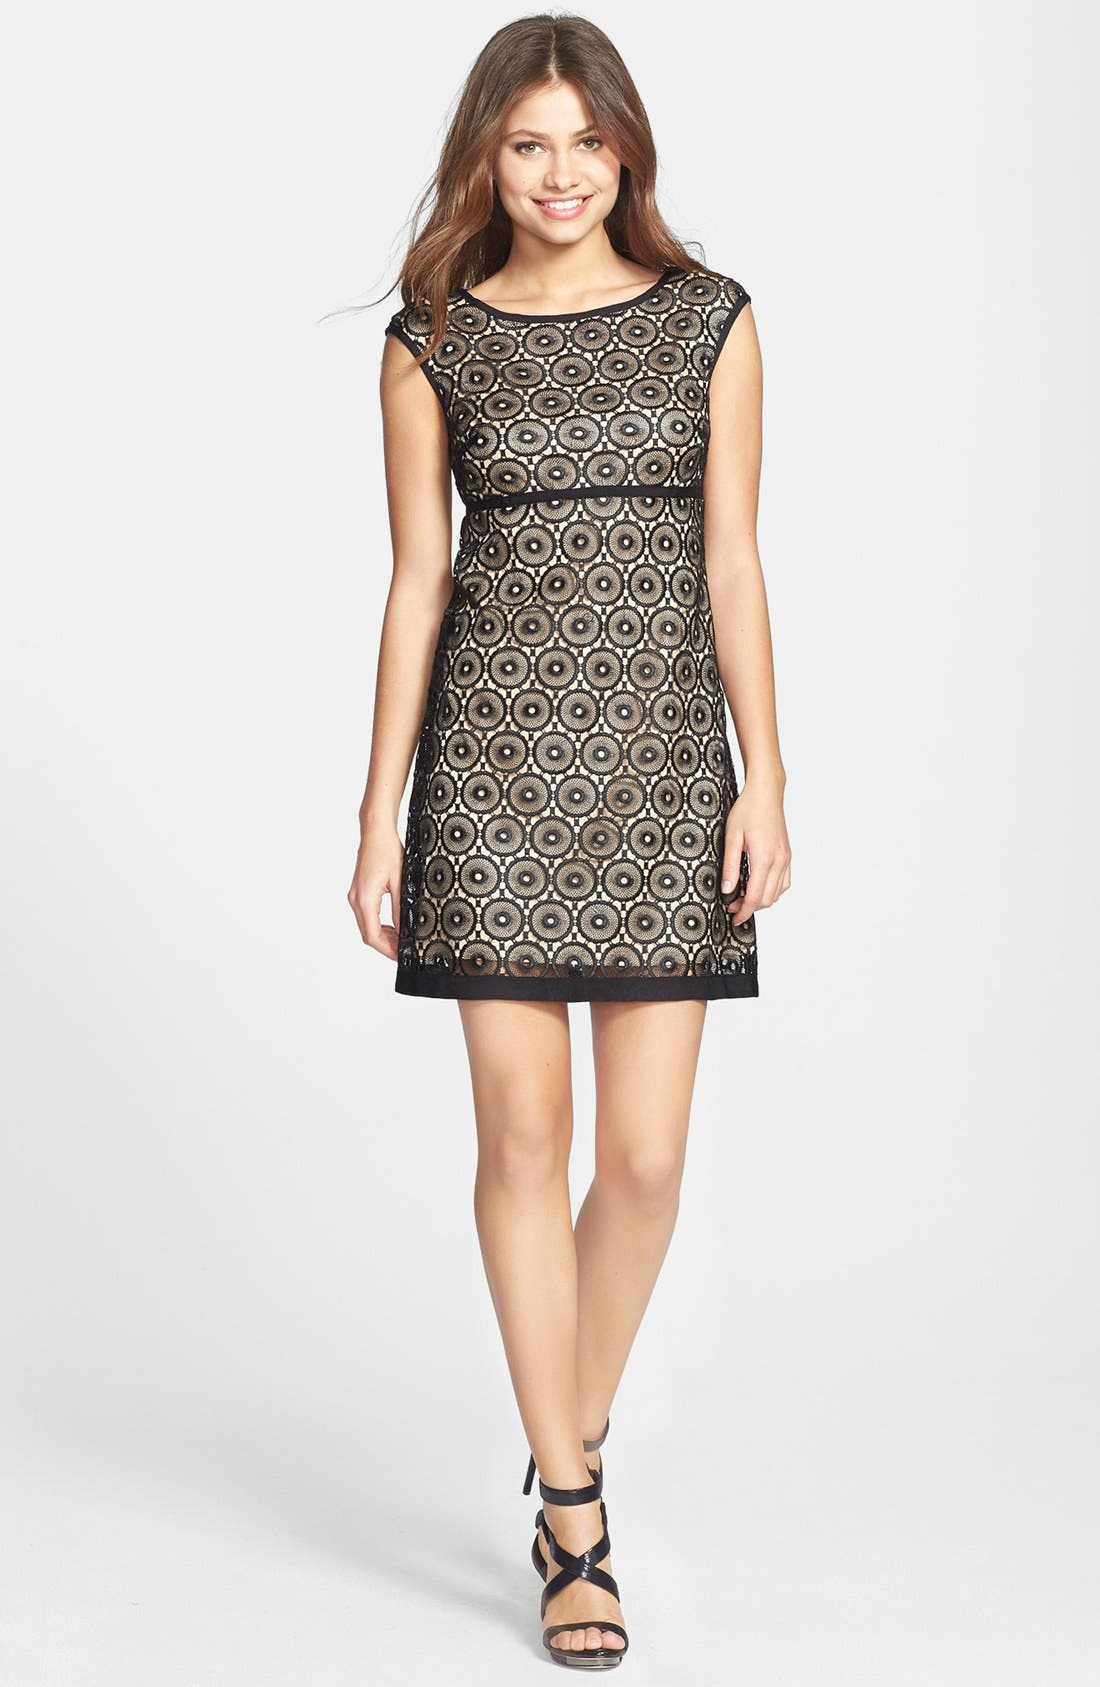 Main Image - Laundry by Shelli Segal Eyelet Lace Fit & Flare Dress